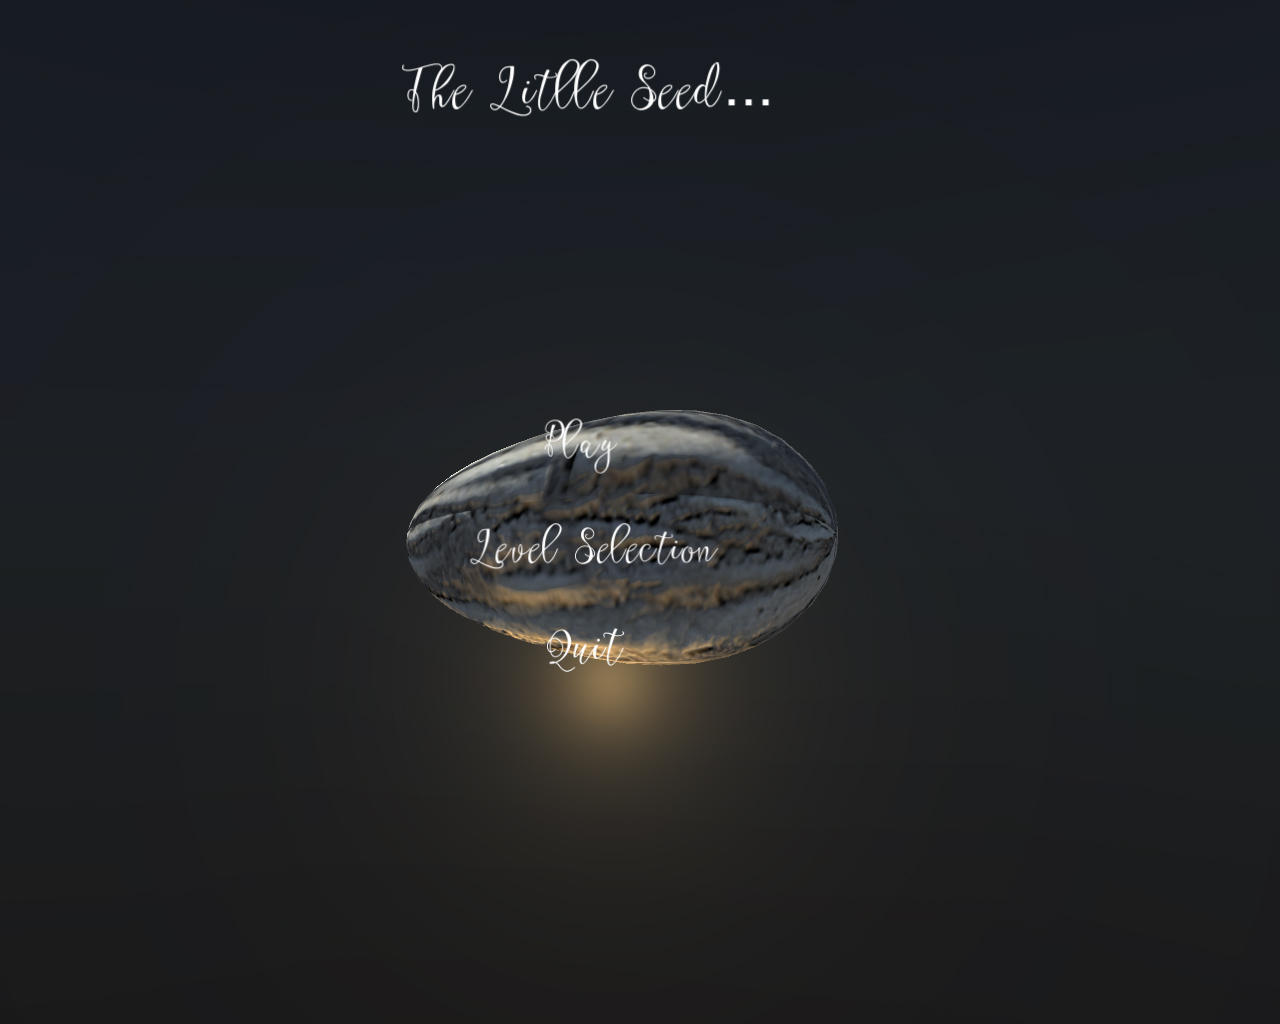 The Litlle Seed...